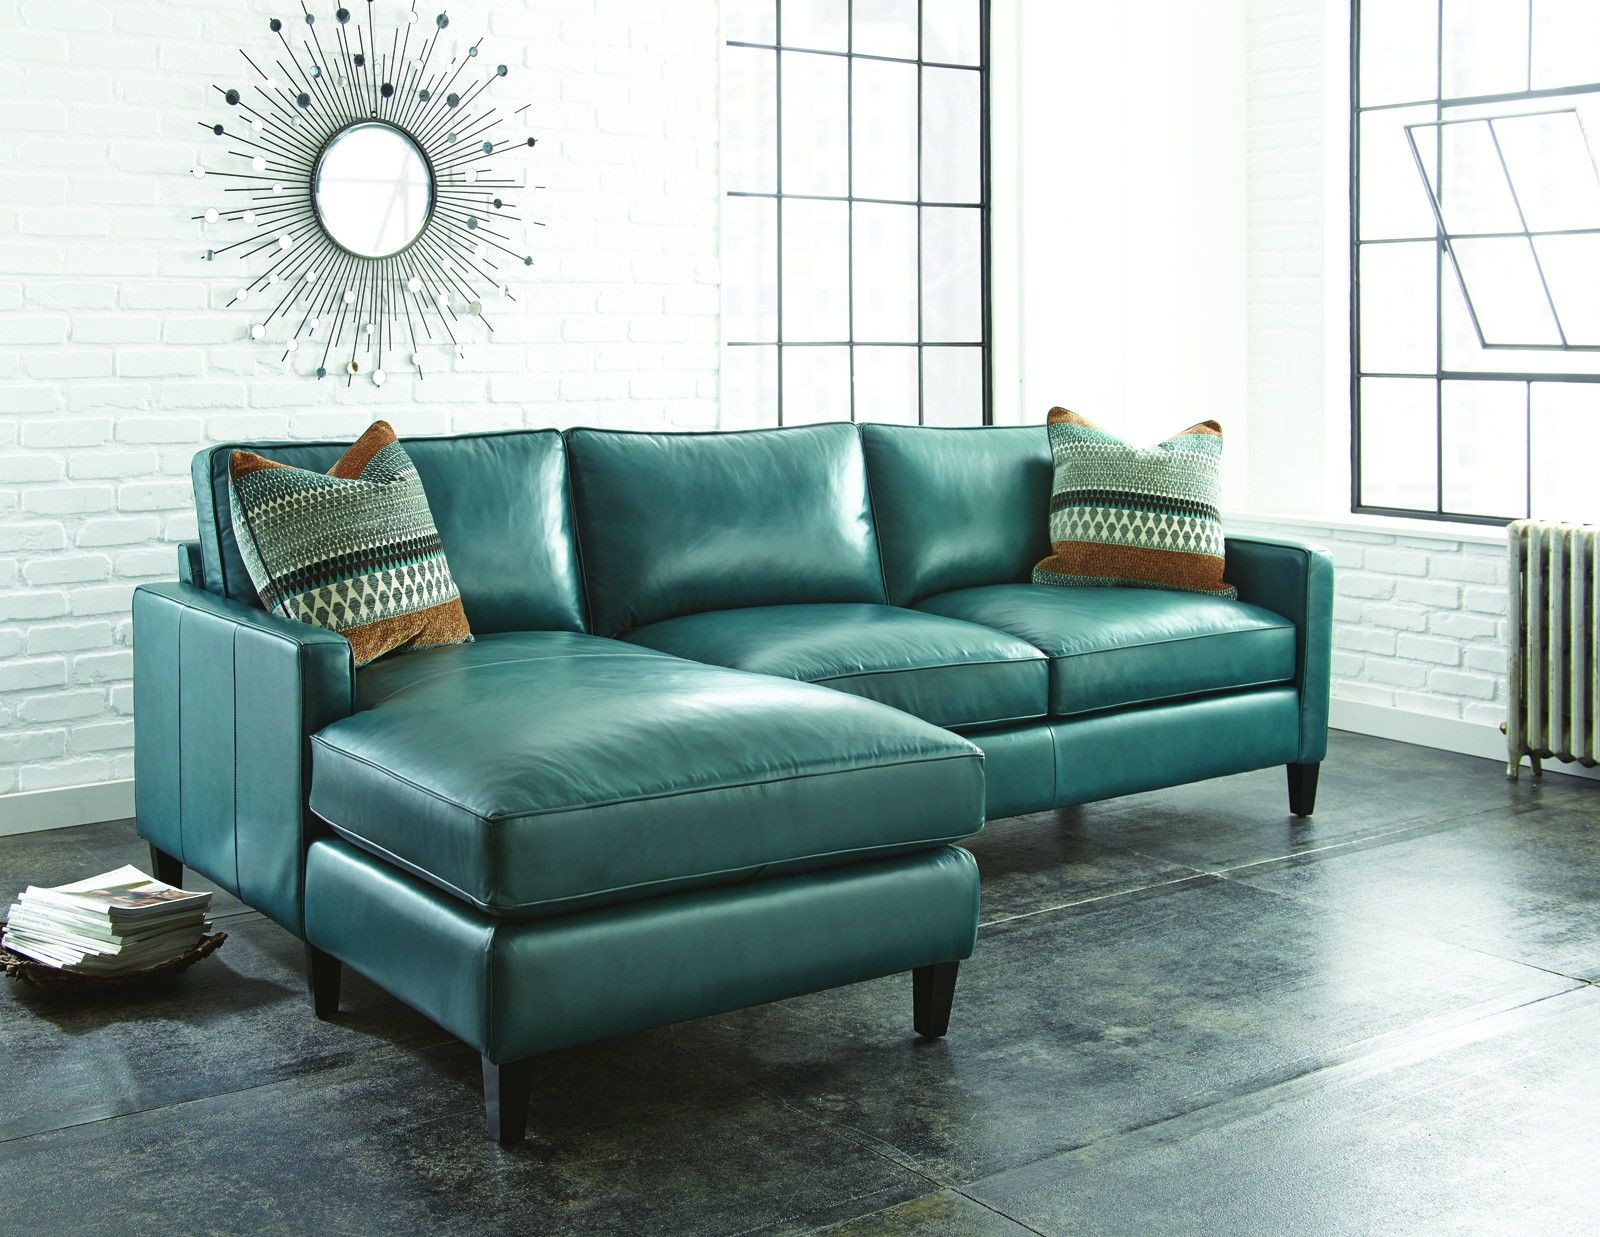 Blue Leather Chair Teal Blue Leather Sofa Thesofa